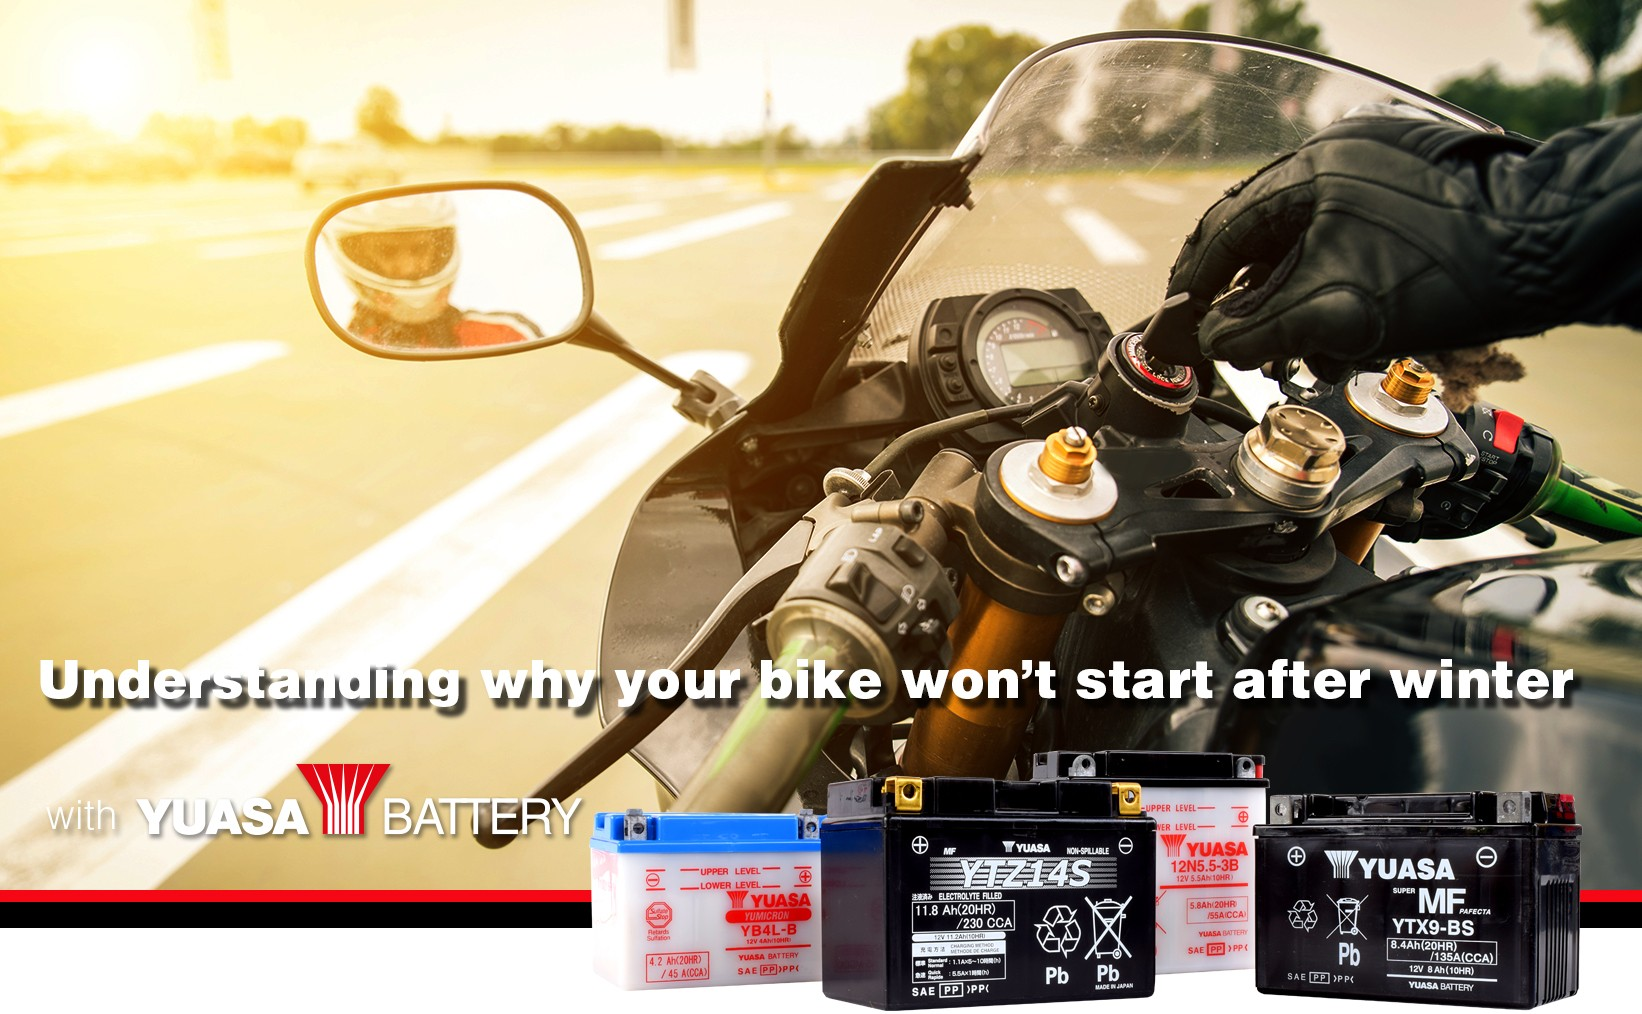 Understanding why your motorcycle won't start after winter